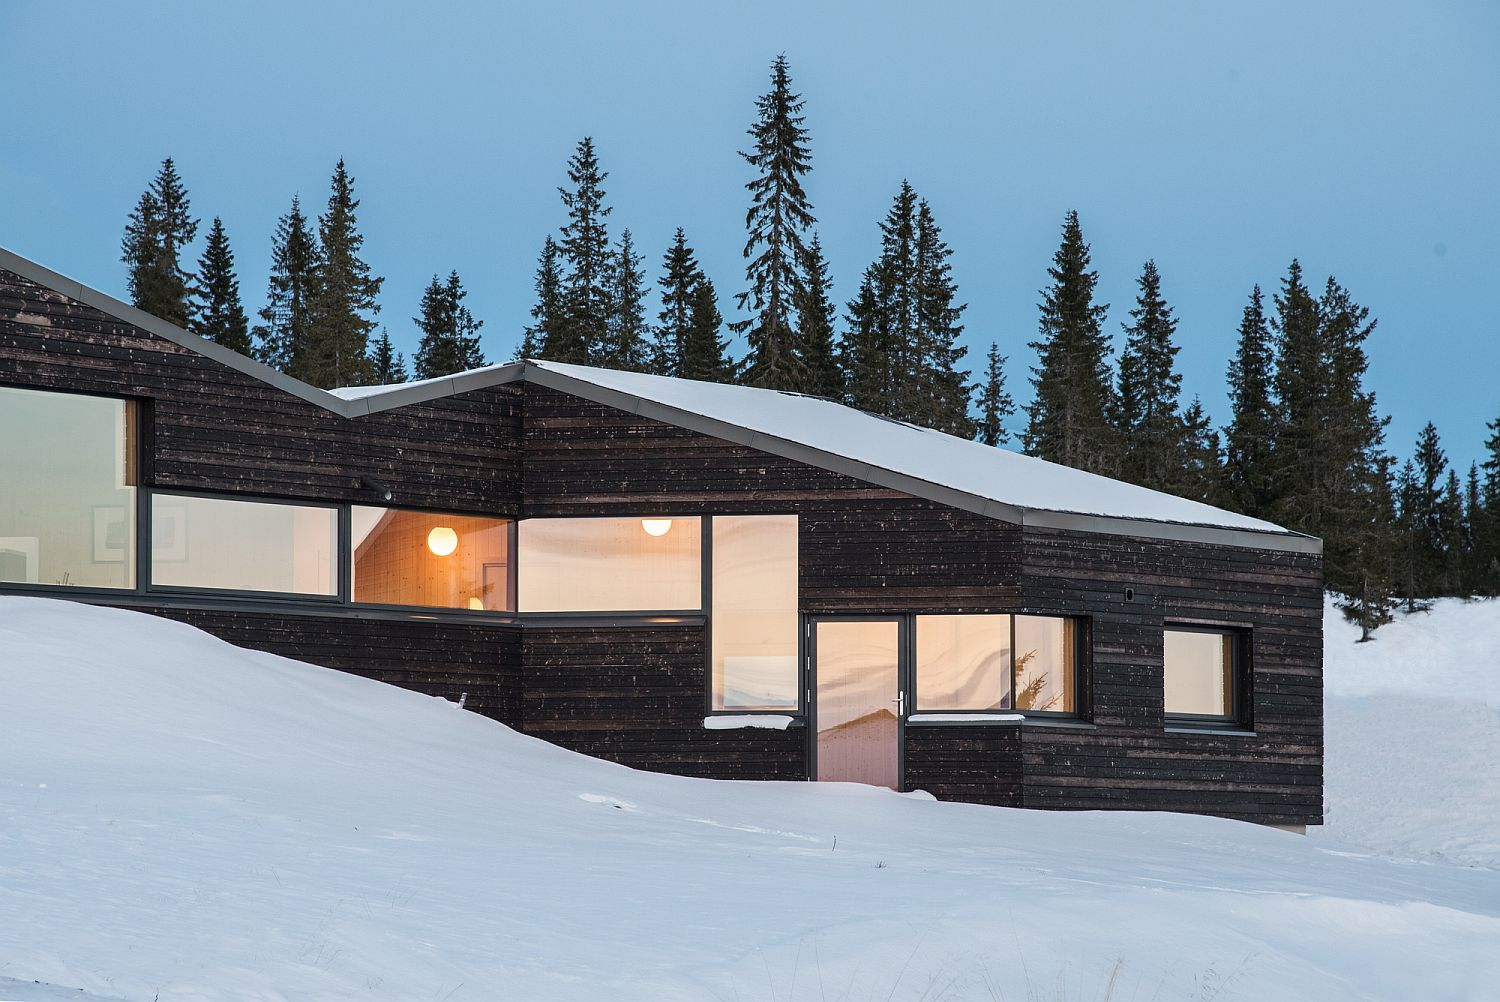 Dark and Minimal: Contemporary Norwegian Cabins with Wooden Warmth